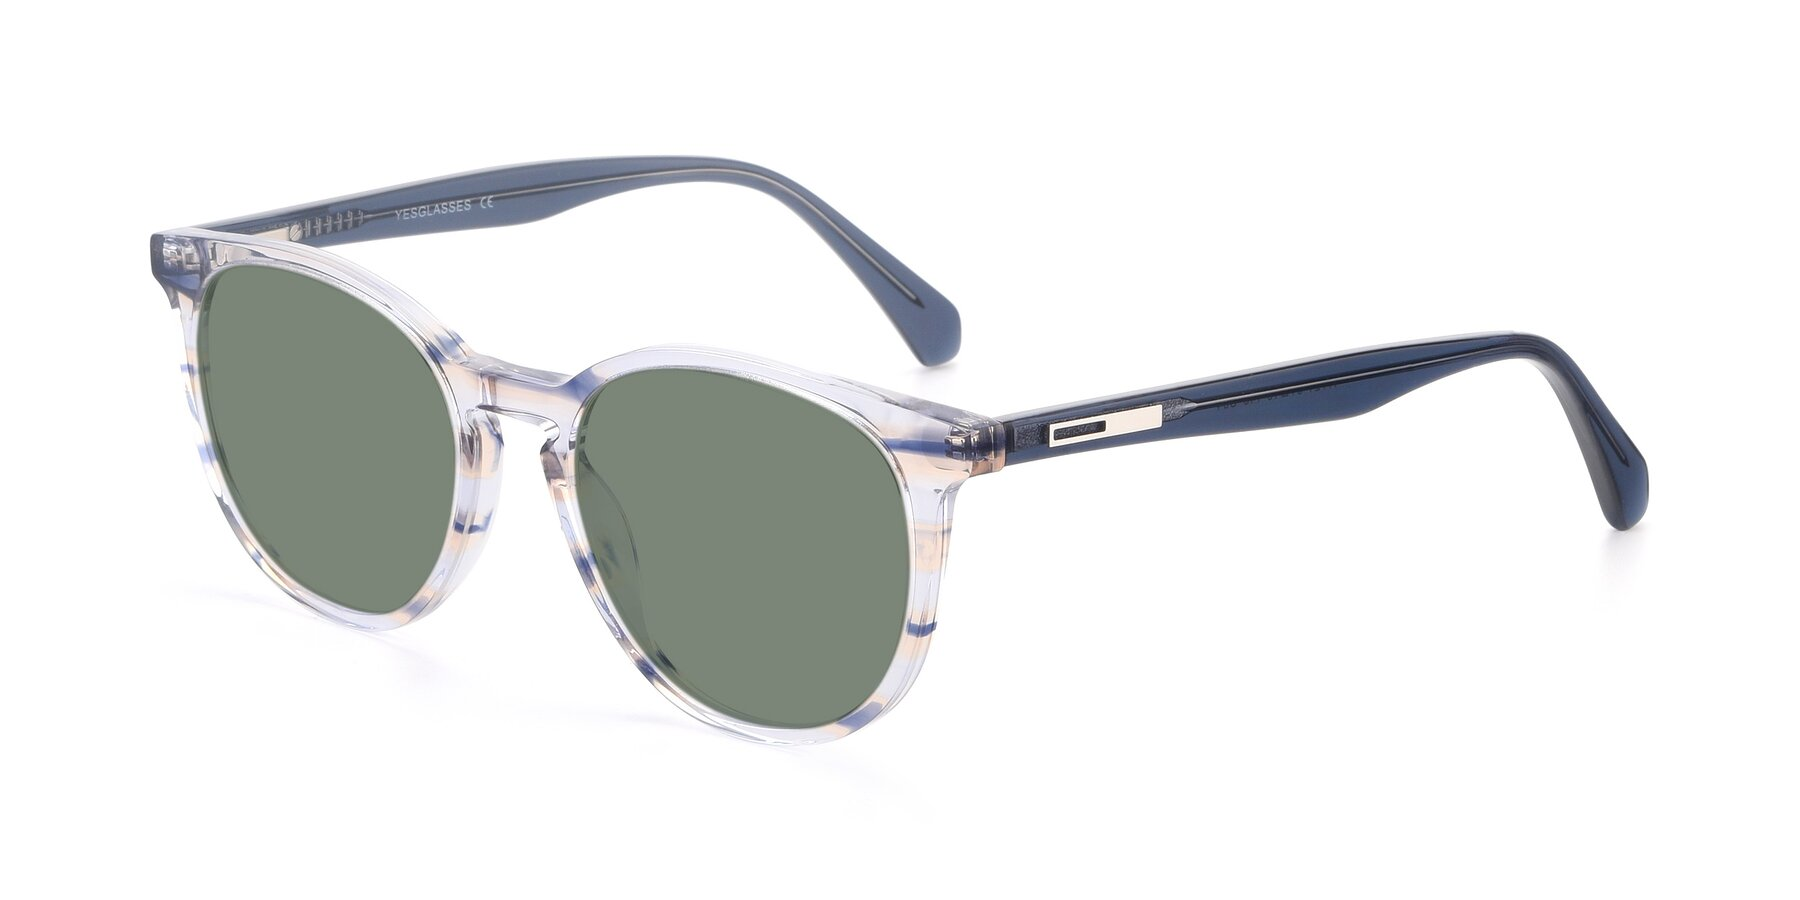 Angle of 17721 in Stripe Blue with Medium Green Tinted Lenses